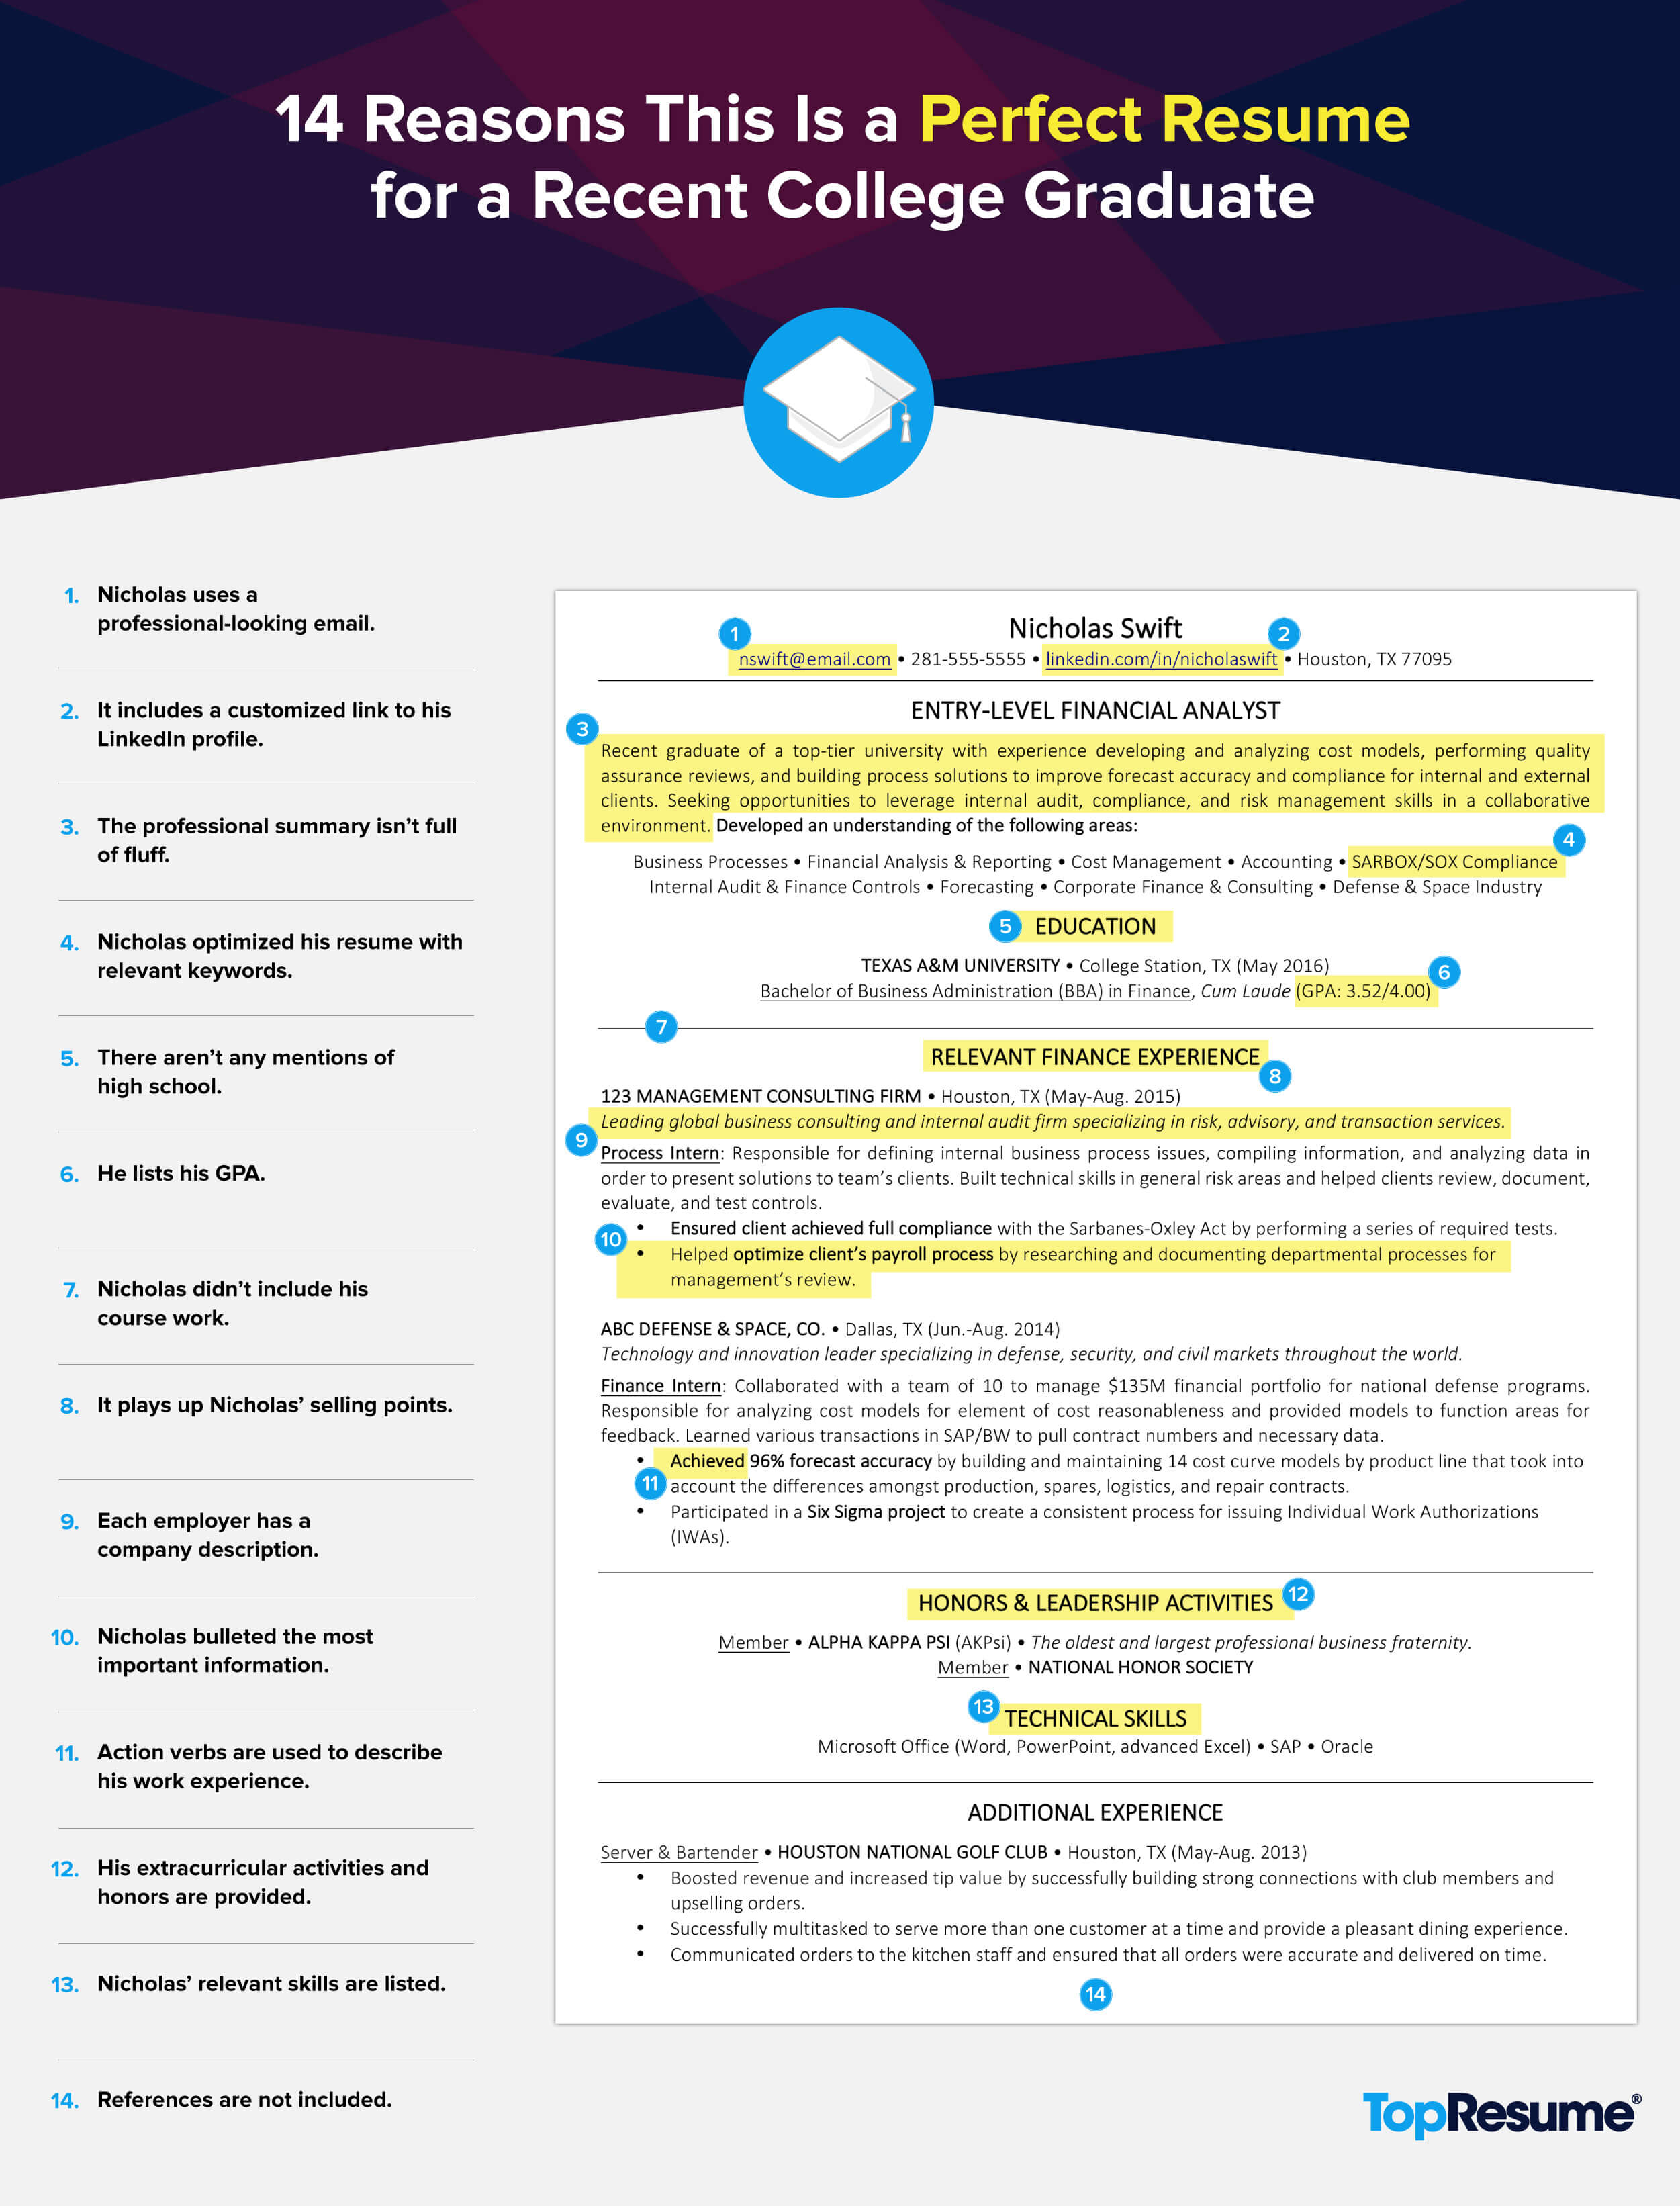 14 Reasons this is a Perfect Recent College Grad Resume – College Resume